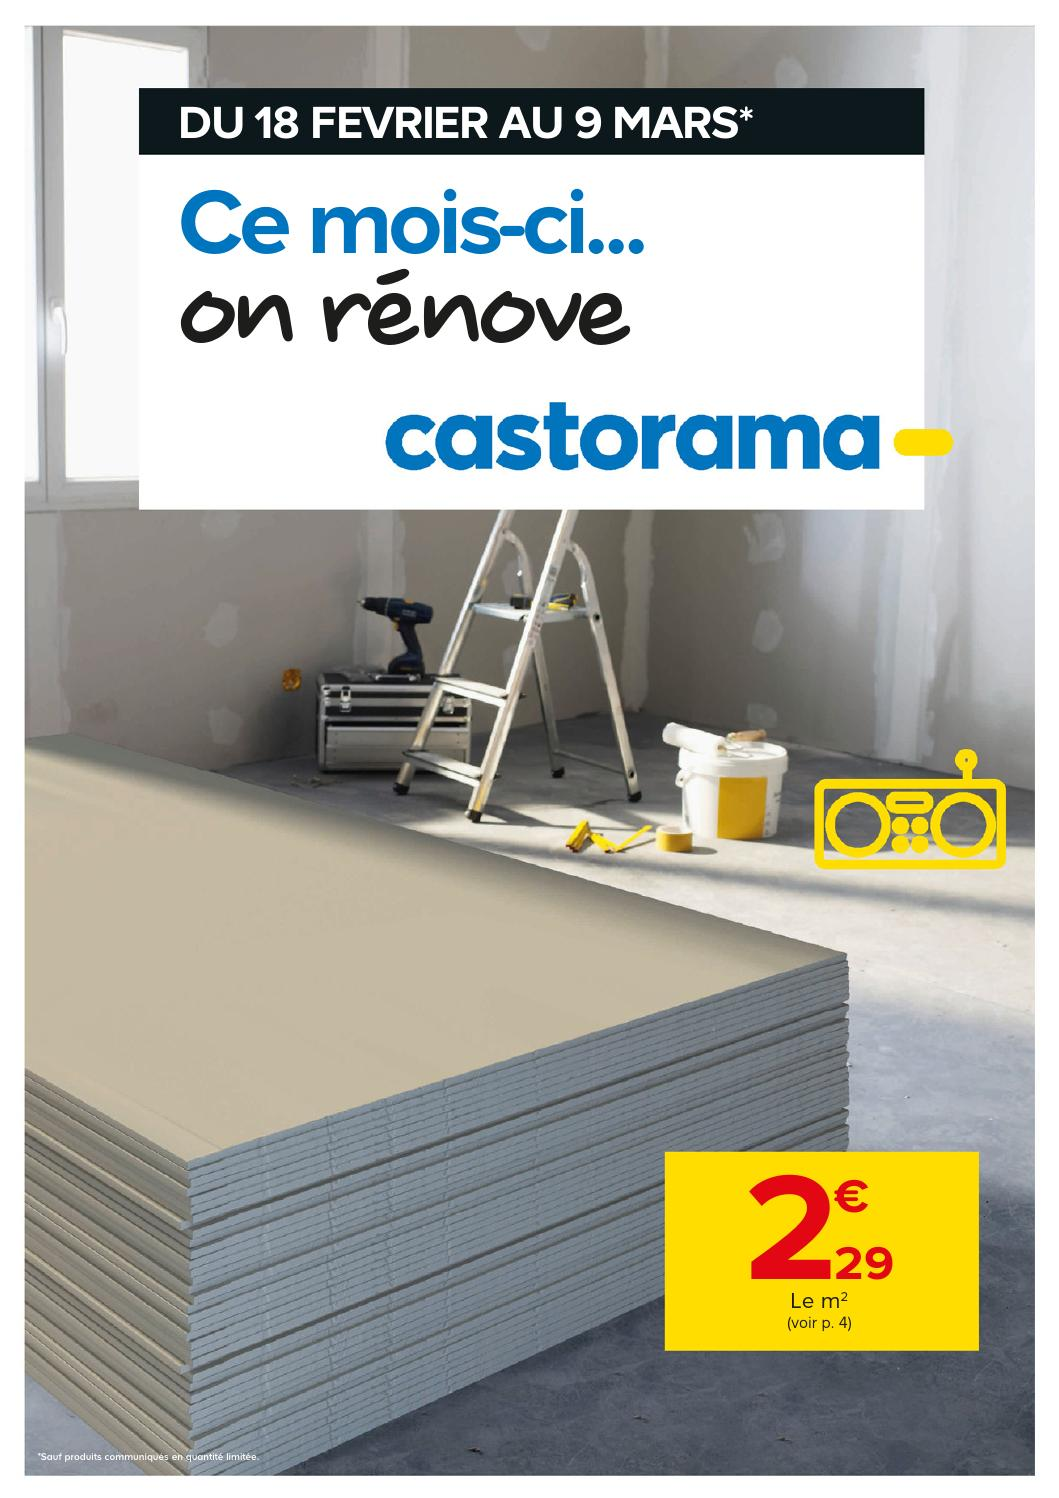 castorama catalogue 18fevrier 9mars2015 by issuu. Black Bedroom Furniture Sets. Home Design Ideas